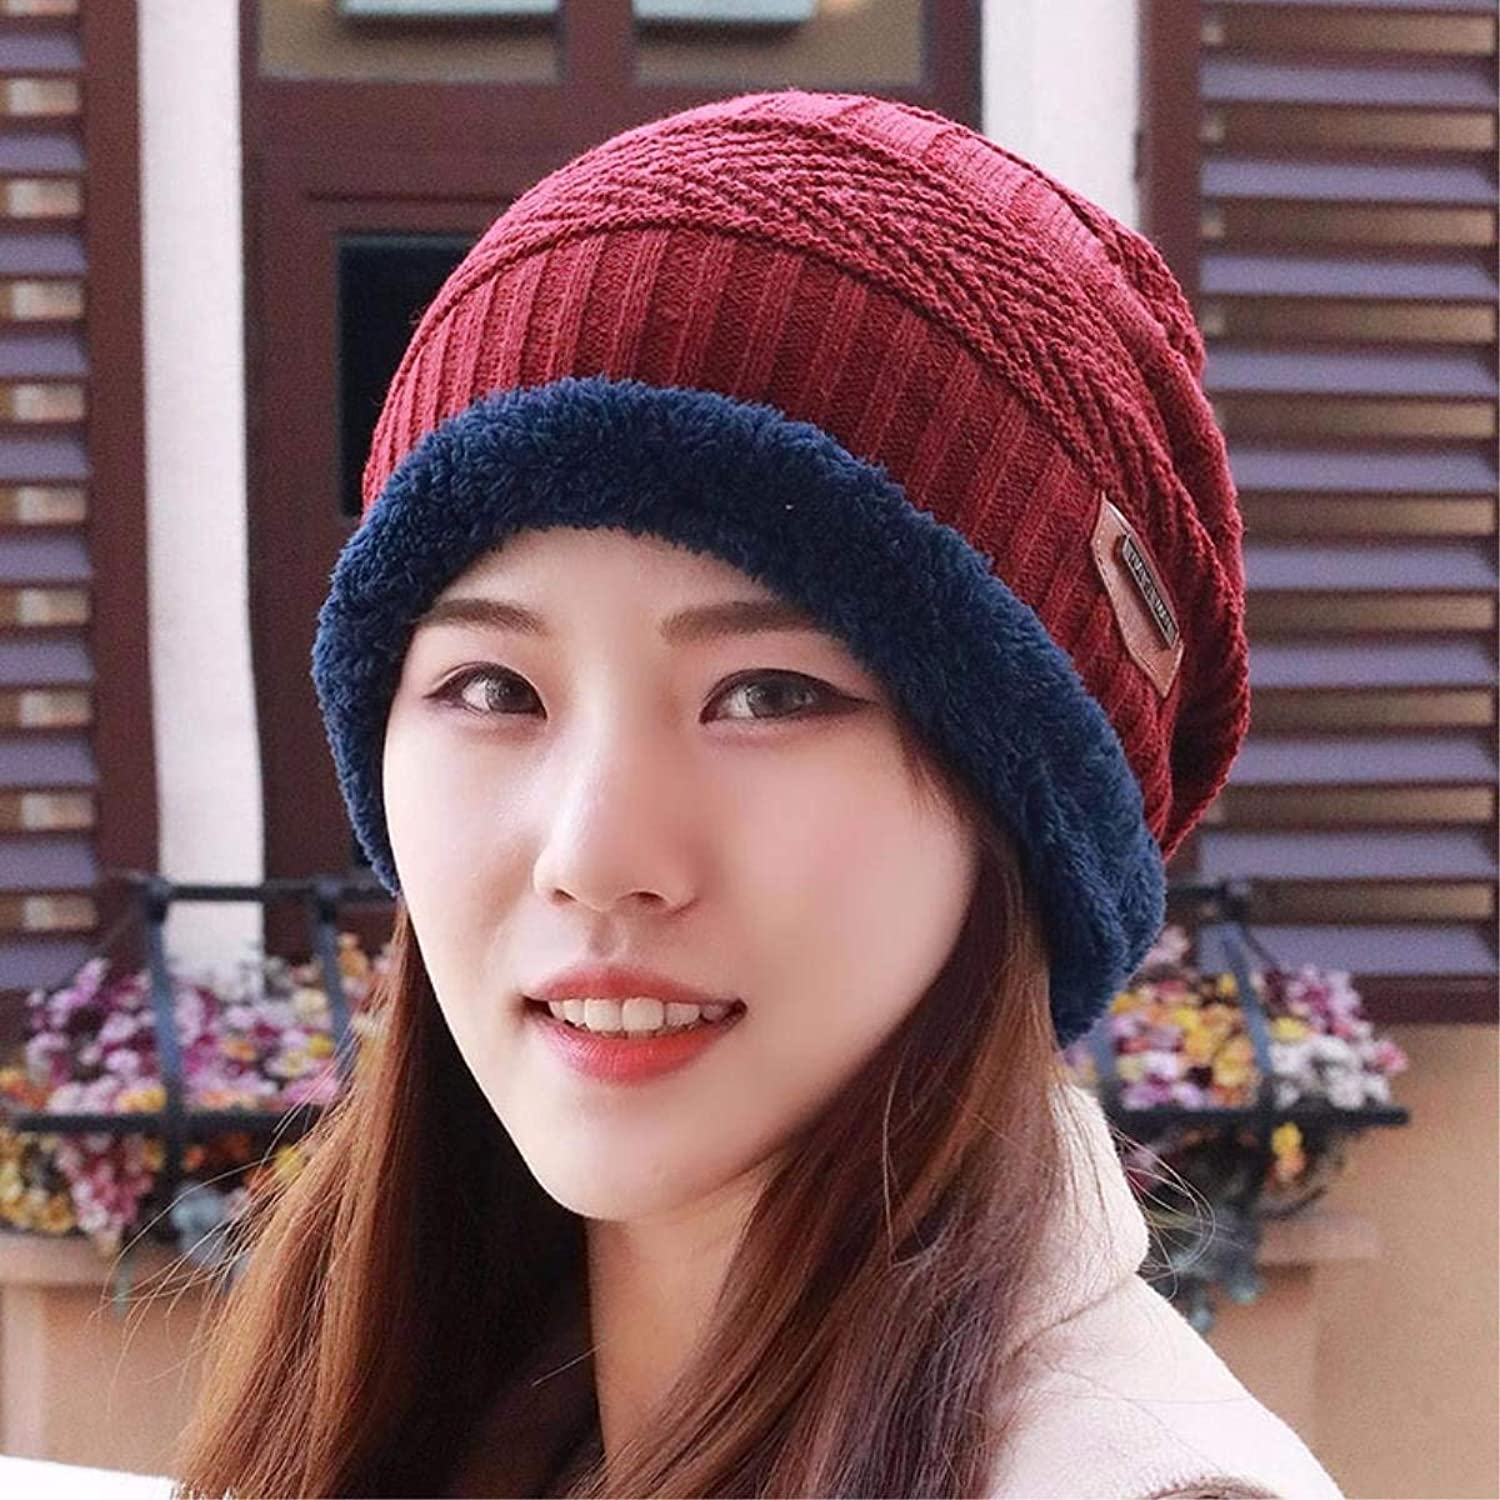 Beach Hat Hat Men and Women Fall Winter Thick Warm Wool Cap Knitted Cap Winter Outdoor Youth Ear Baotou Cap Couple Summer Sun Hat (color   The Red)